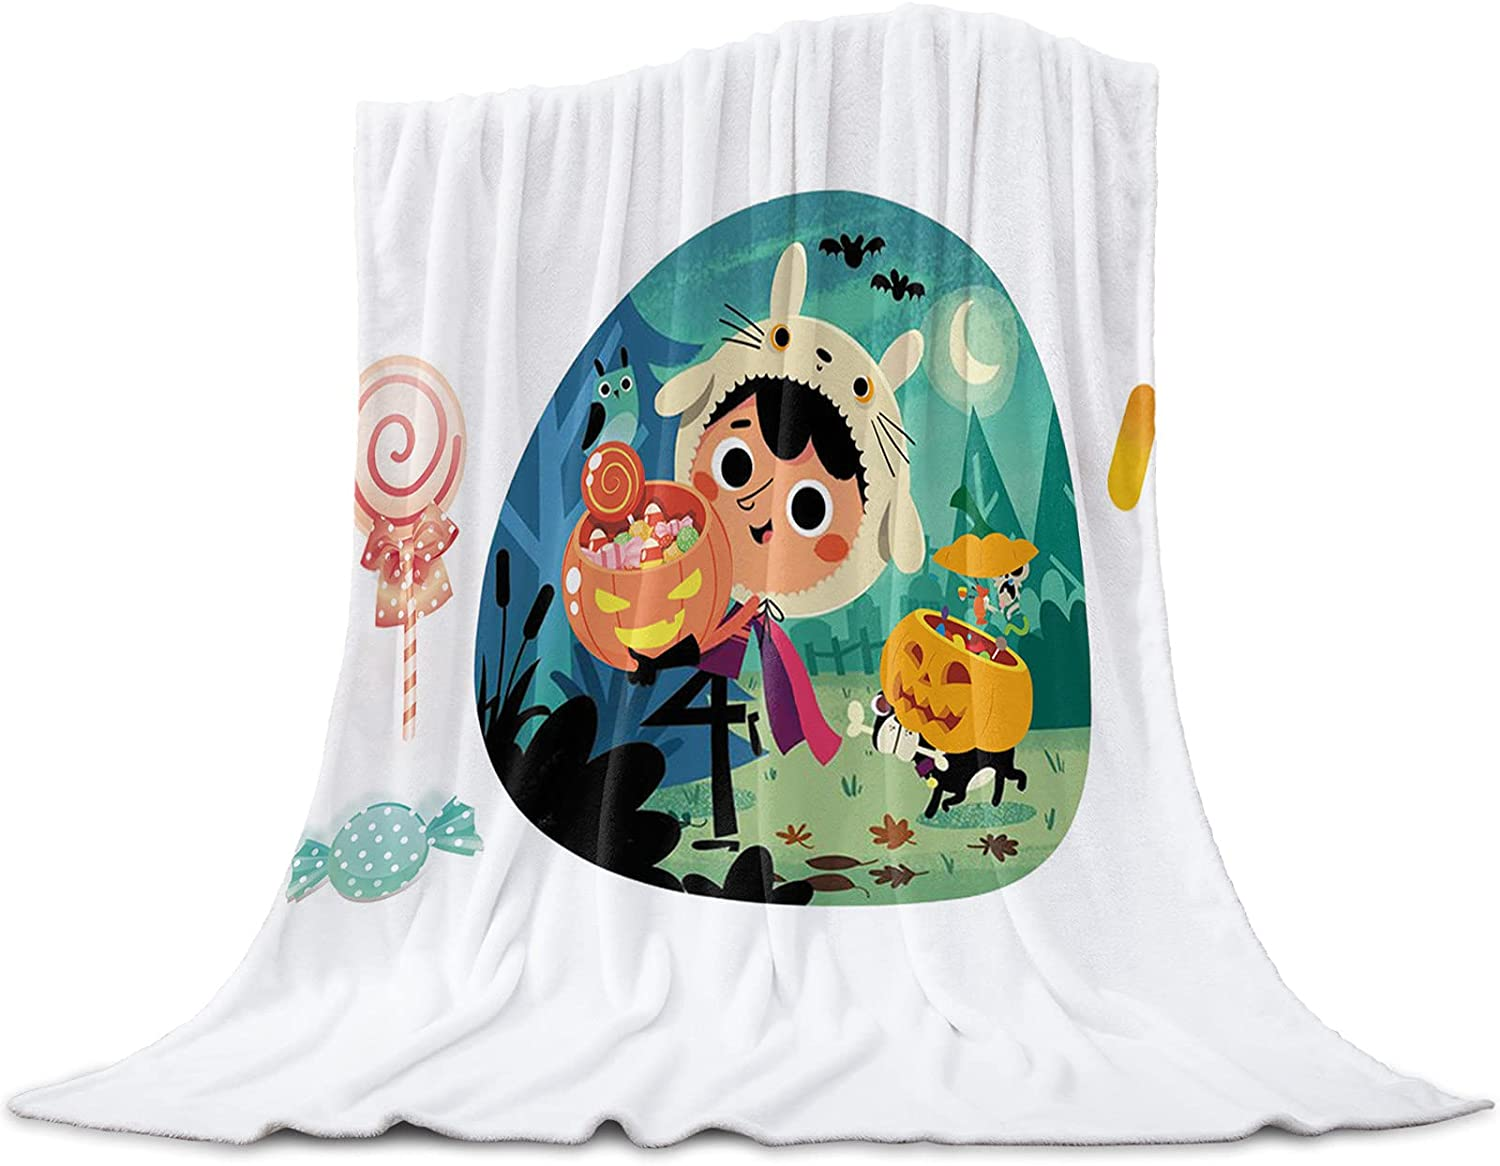 Fantasy Staring Throw Blanket for Bed x Inche Couch Great Quantity limited interest 59 49 Cartoo